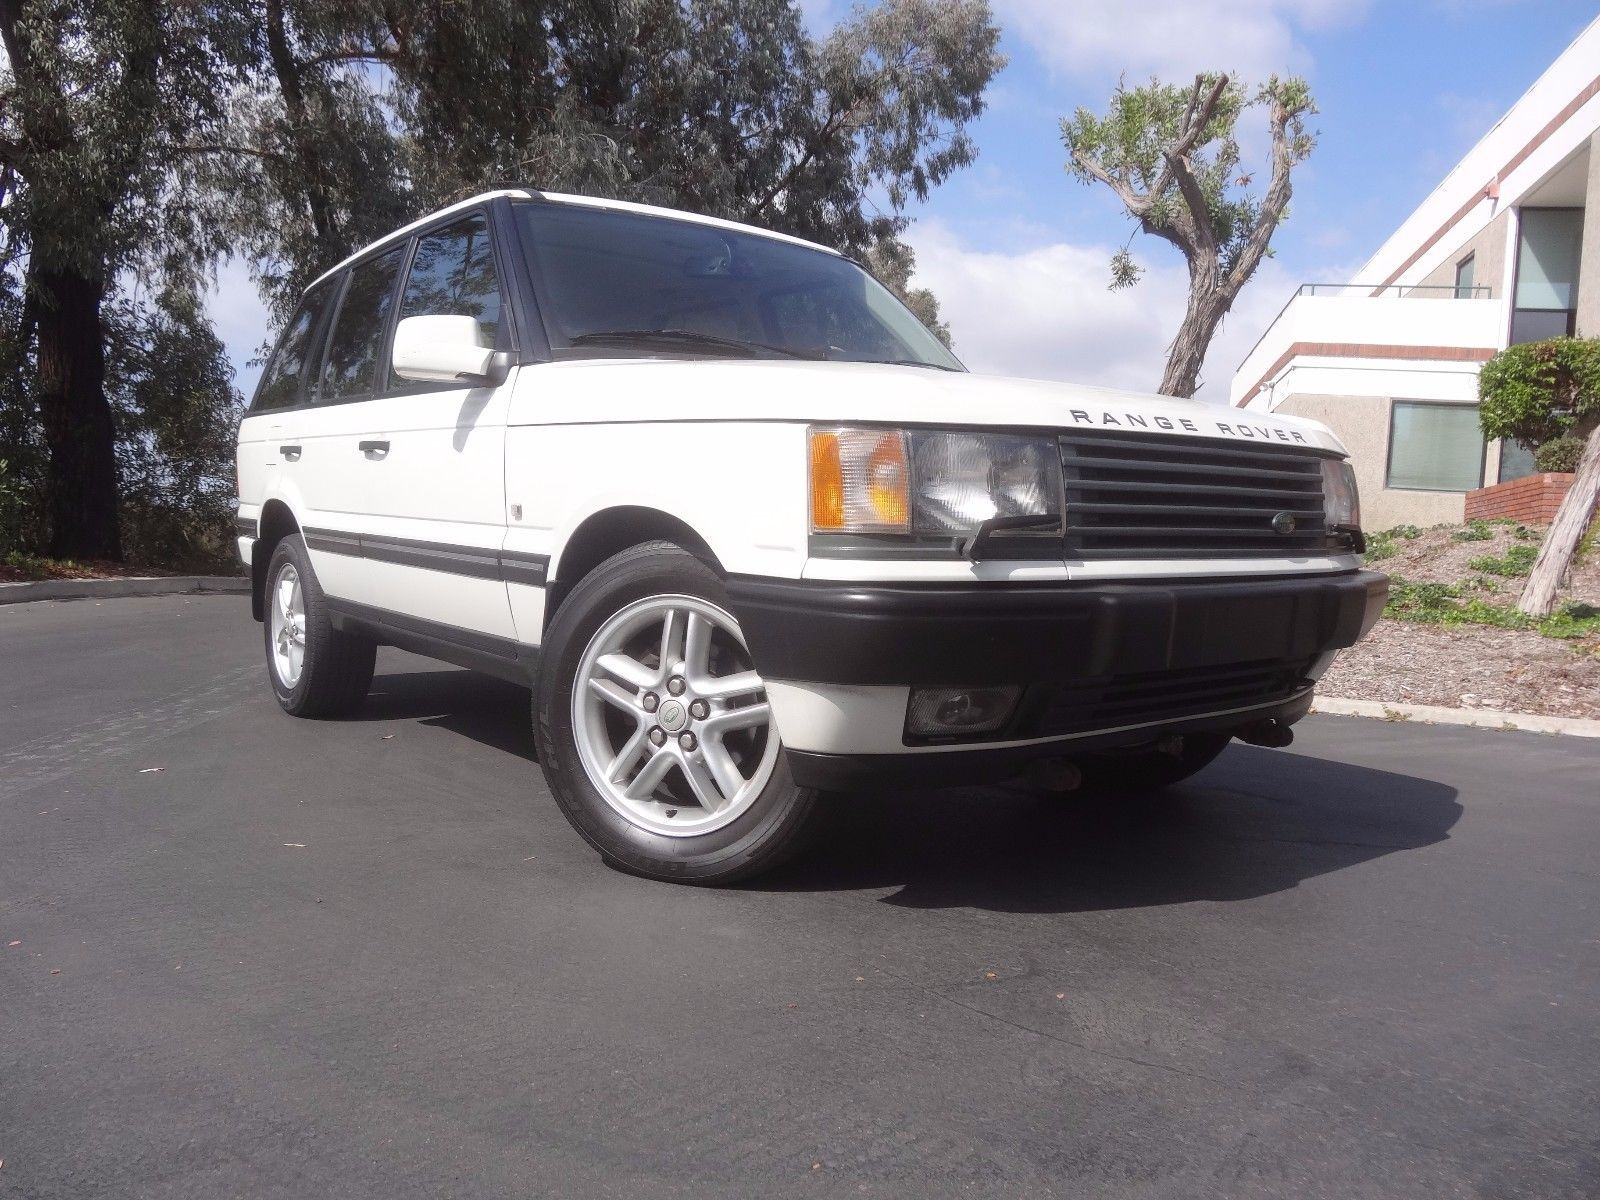 Awesome Great 2001 Land Rover Range Rover Hse 2001 Land Rover